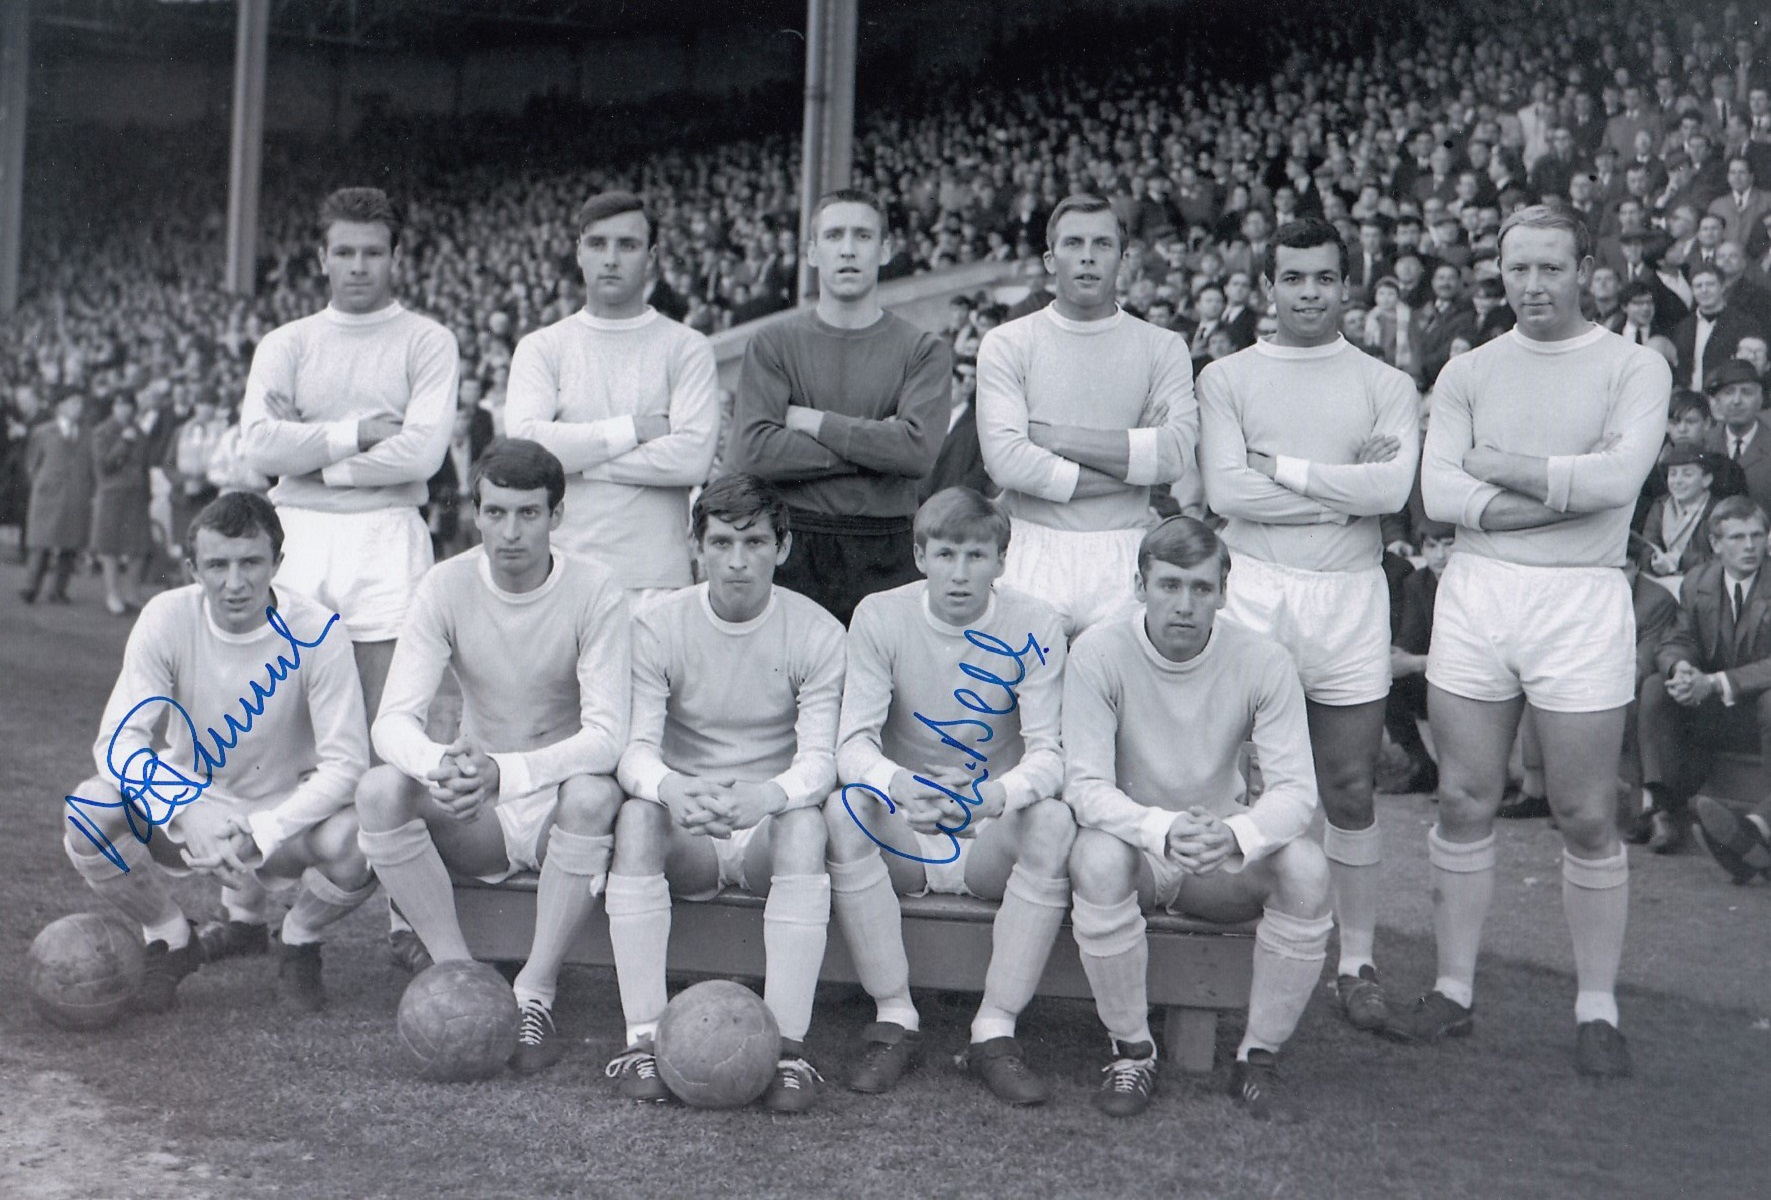 Autographed MAN CITY 12 x 8 photo - B/W, depicting players posing for a team group prior to a 2-1